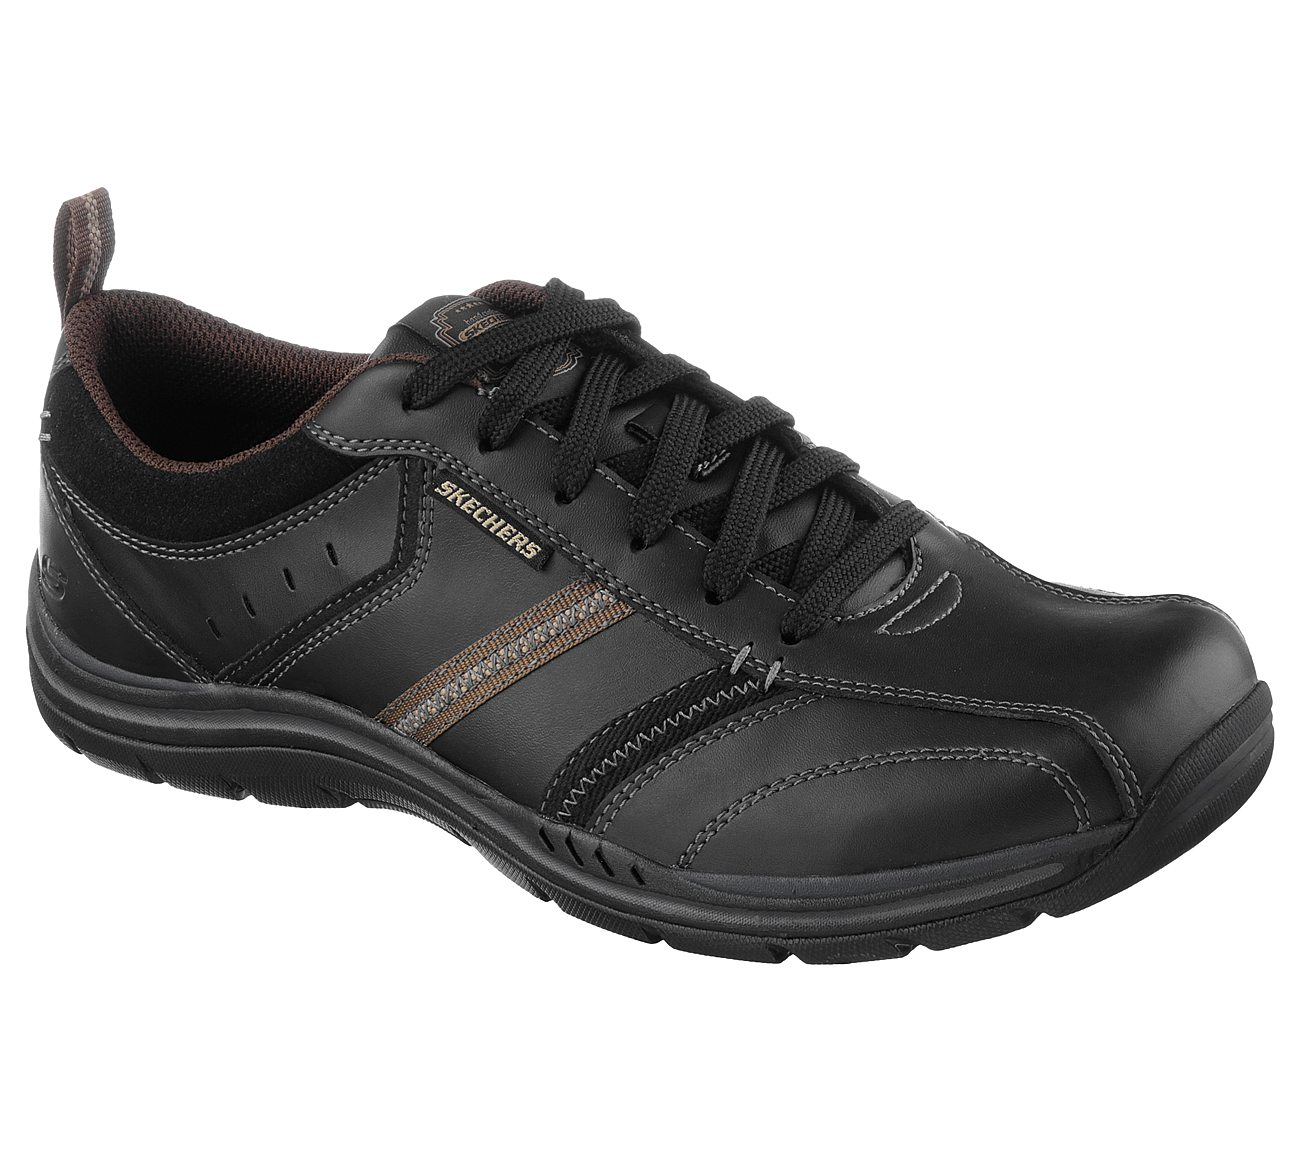 Mens Skechers Expected-Devention Lace Up Relaxed Fit Sneaker Black Leather